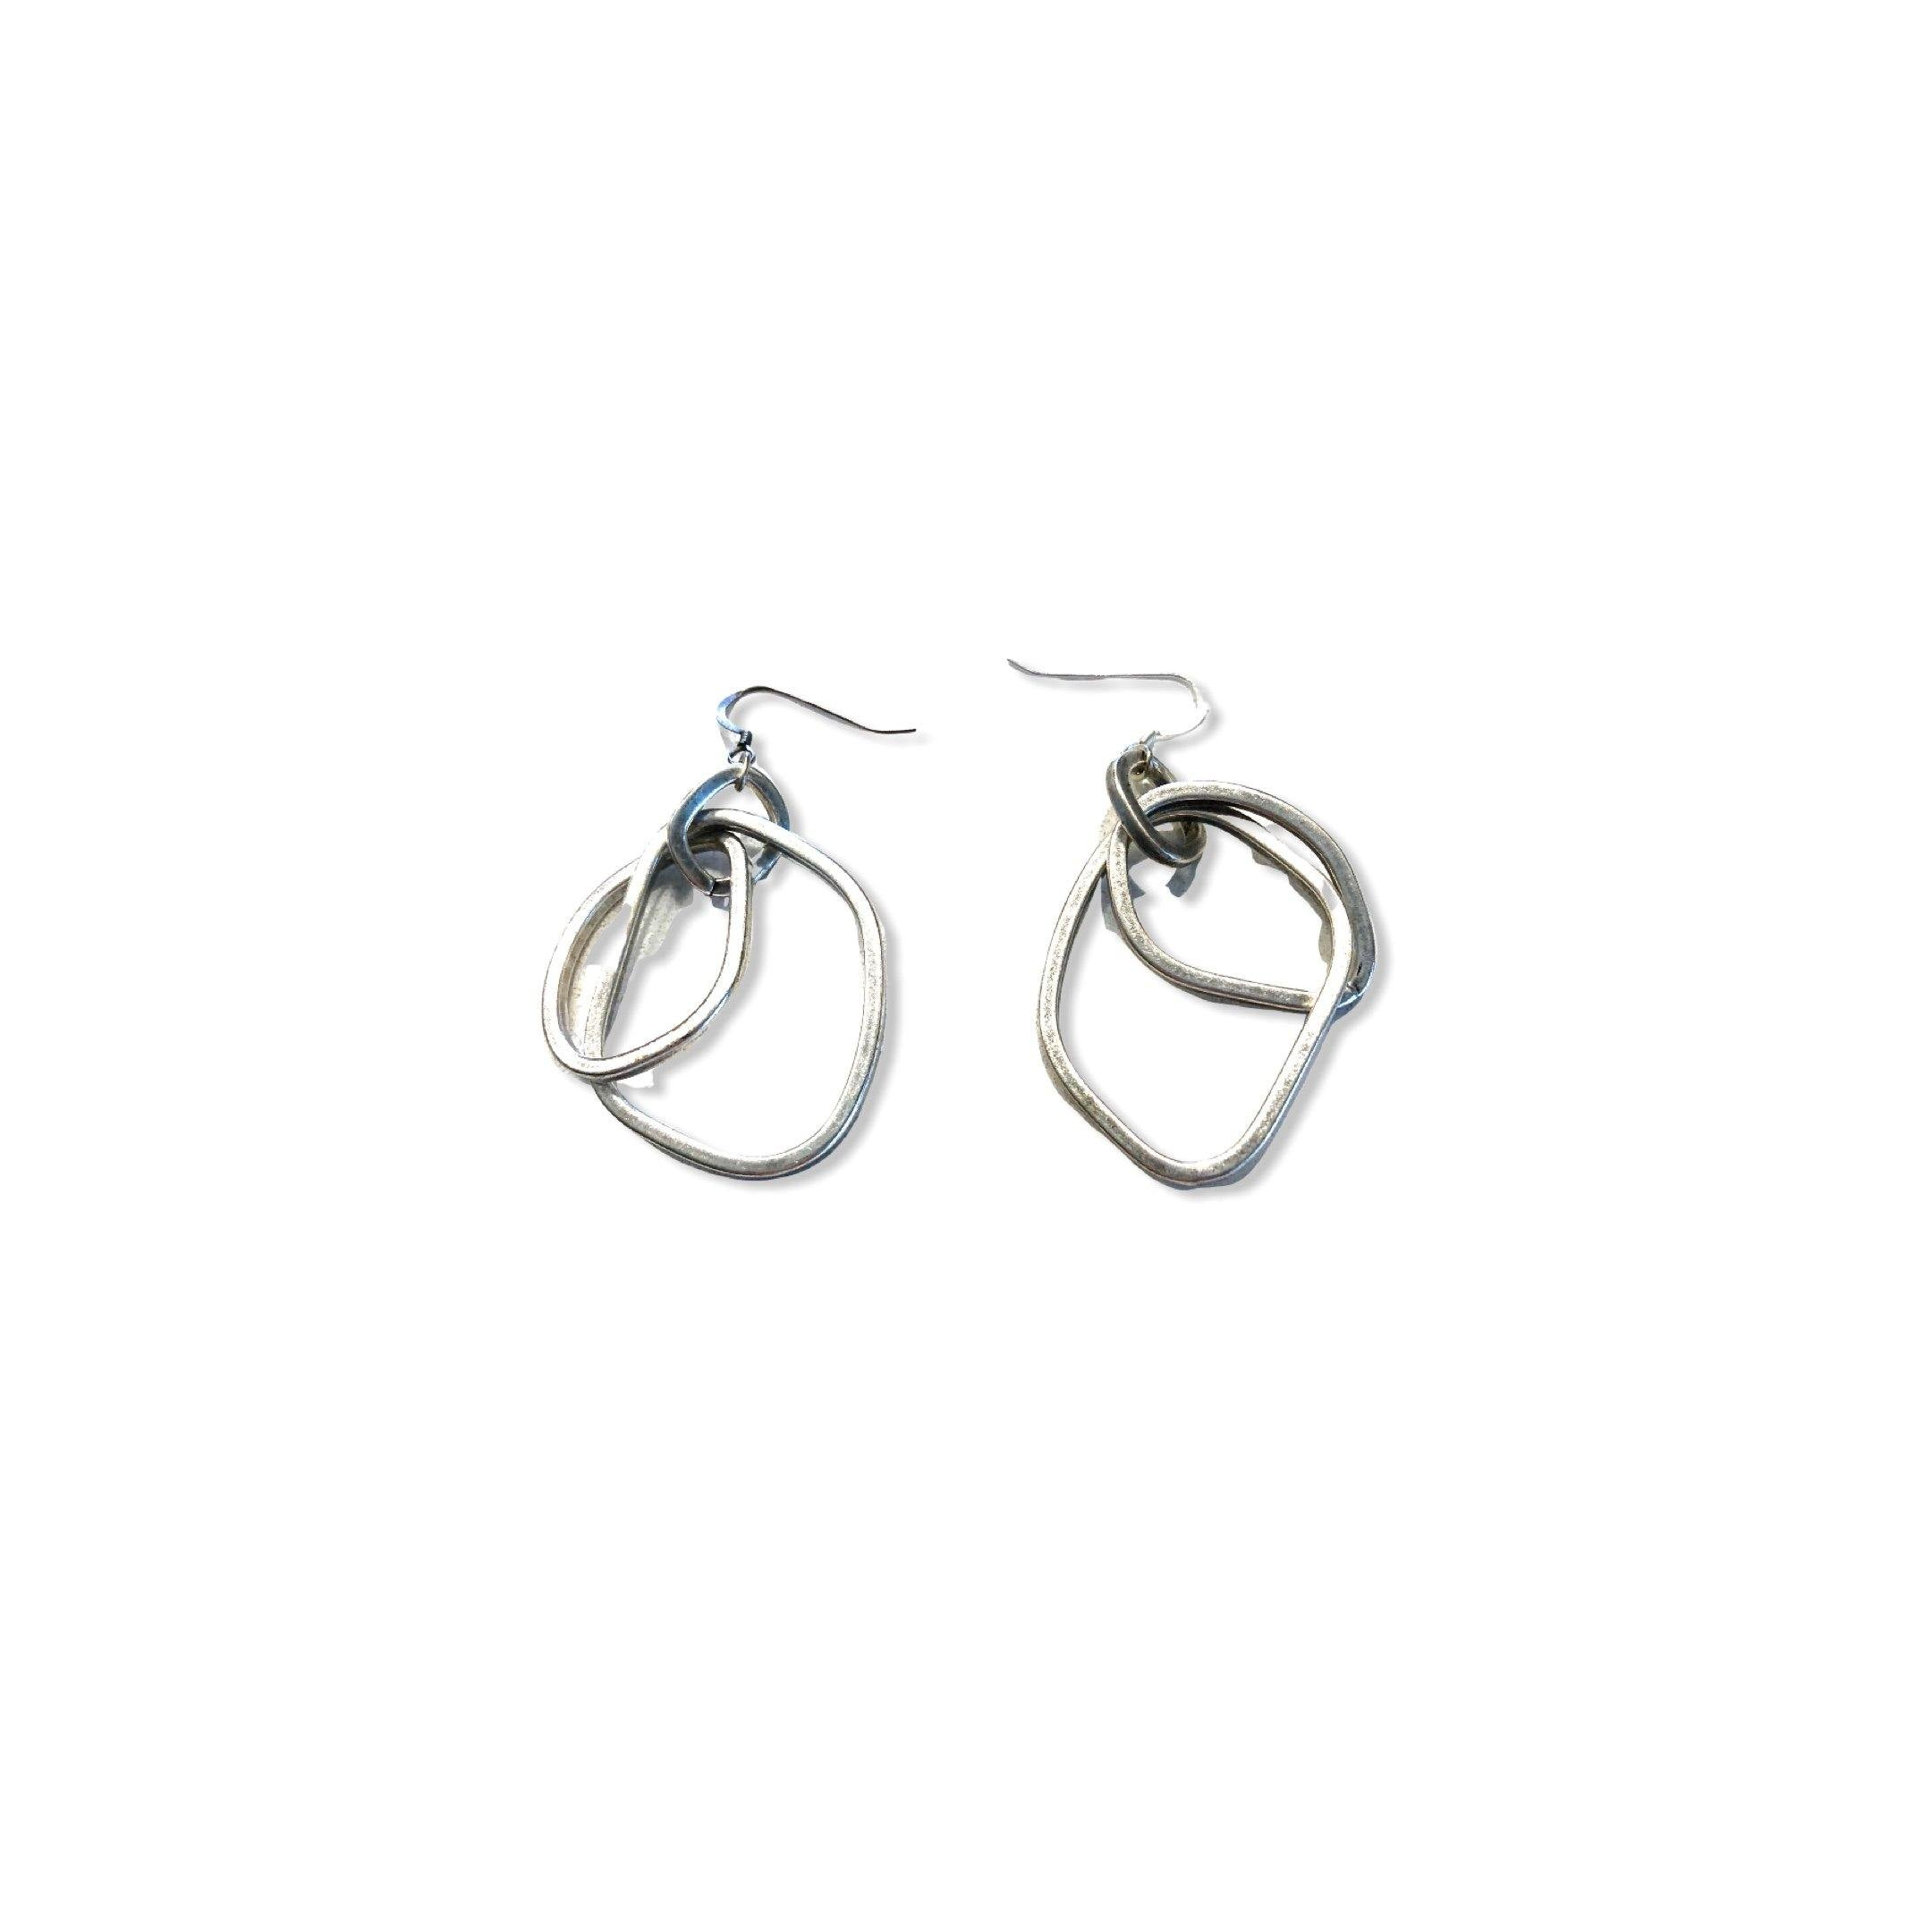 Double Hoop Silver Earrings - Irit Sorokin Designs Canadian handmade jewelry